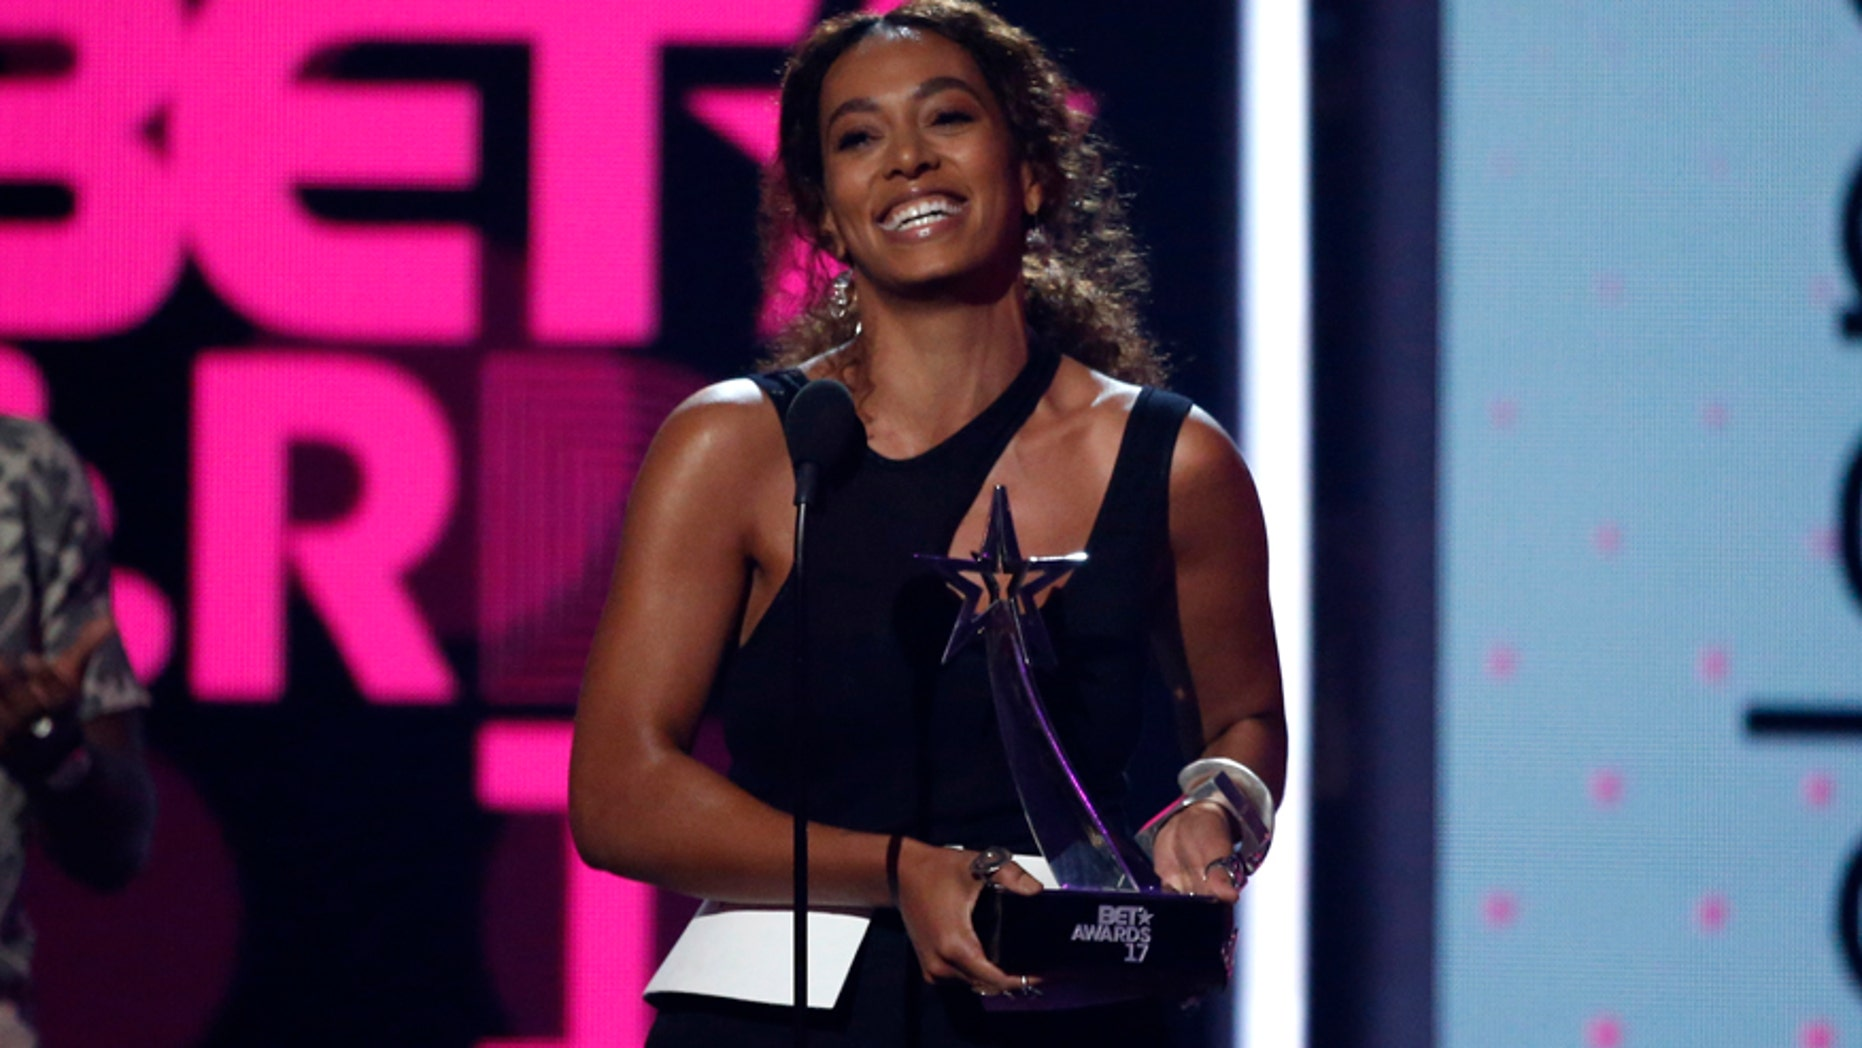 Solange Knowles opens up about her struggles with autonomic disorder in a new post. Here the singer accepts an award at the BET Awards in Los Angeles, June 2017.